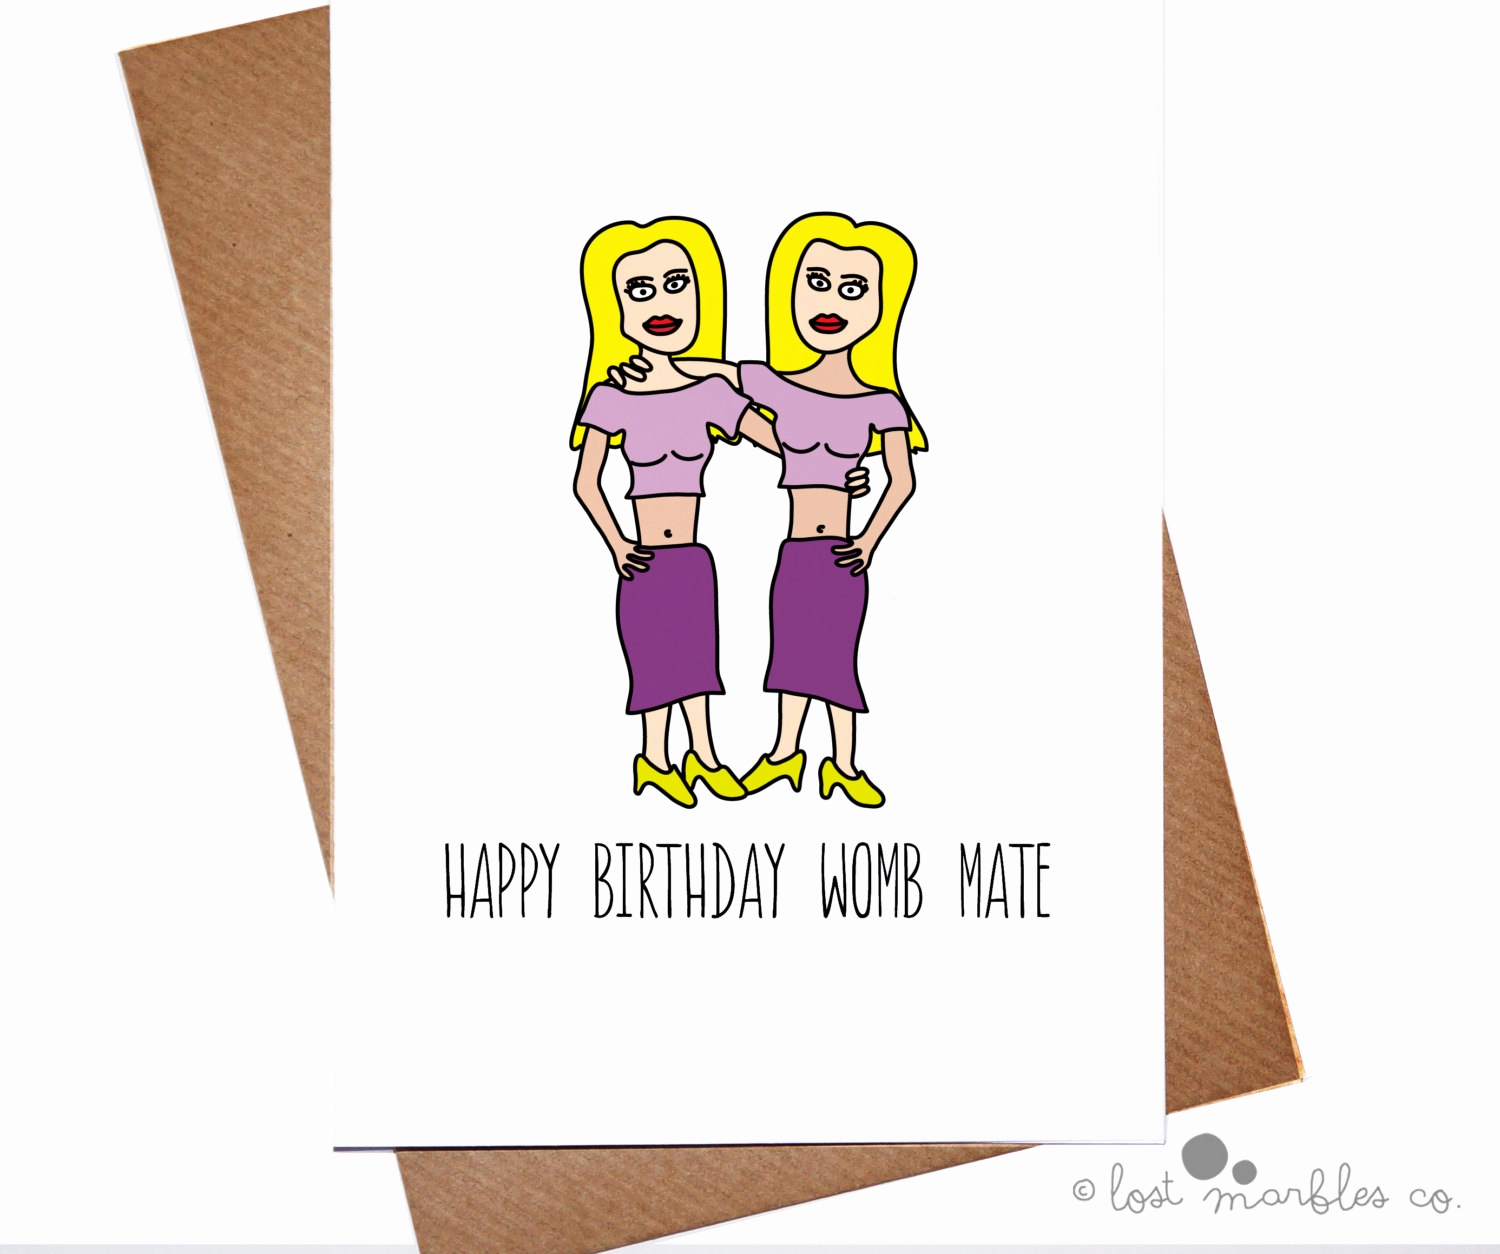 cute happy birthday drawings ; how-to-draw-happy-birthday-card-elegant-birthday-card-popular-items-cute-birthday-cards-cute-birthday-of-how-to-draw-happy-birthday-card